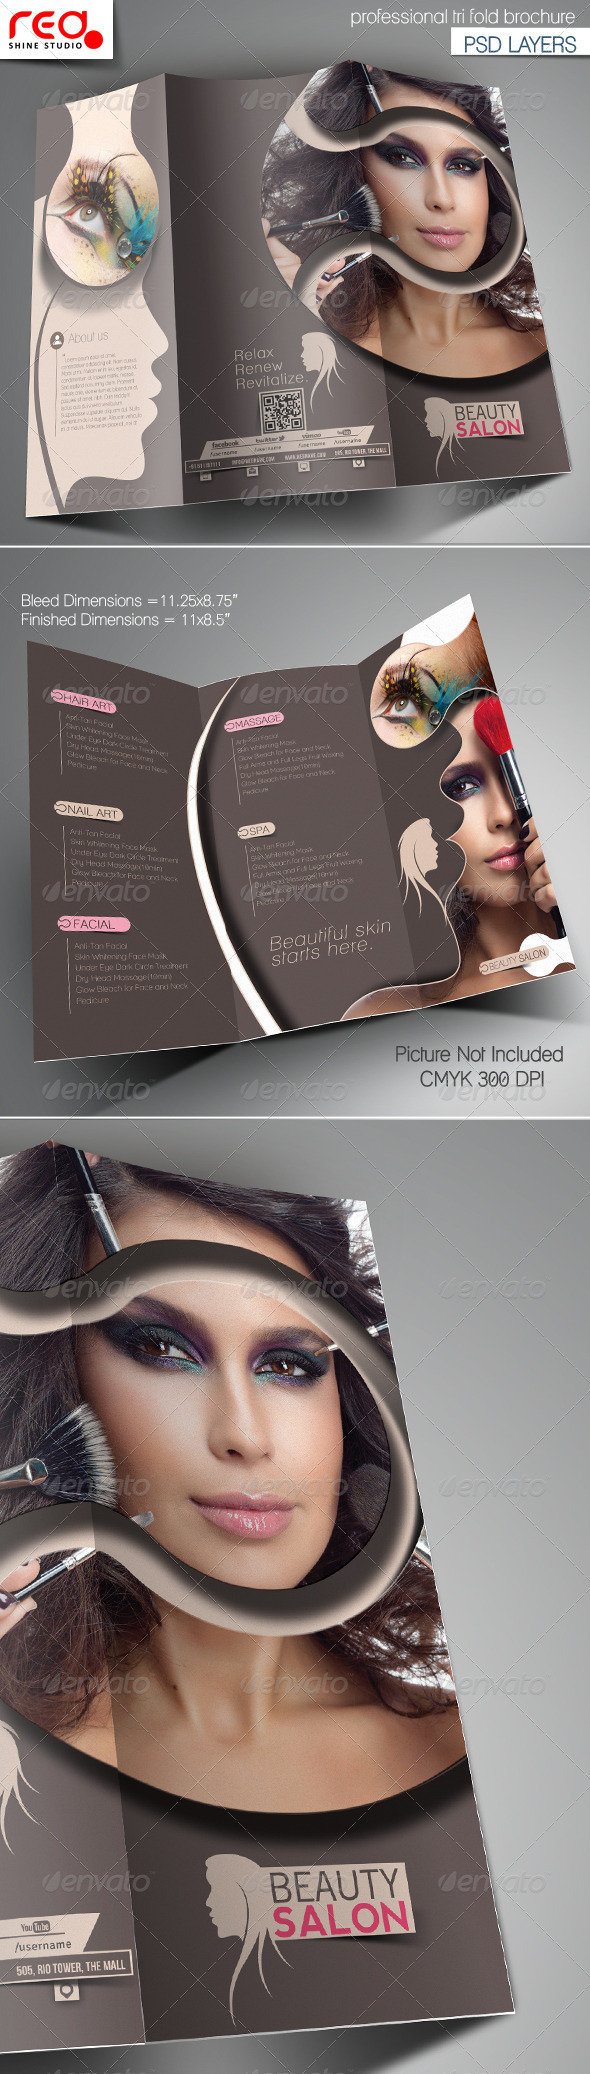 GraphicRiver Beauty Salon Promotion Trifold Brochure Template 6911268